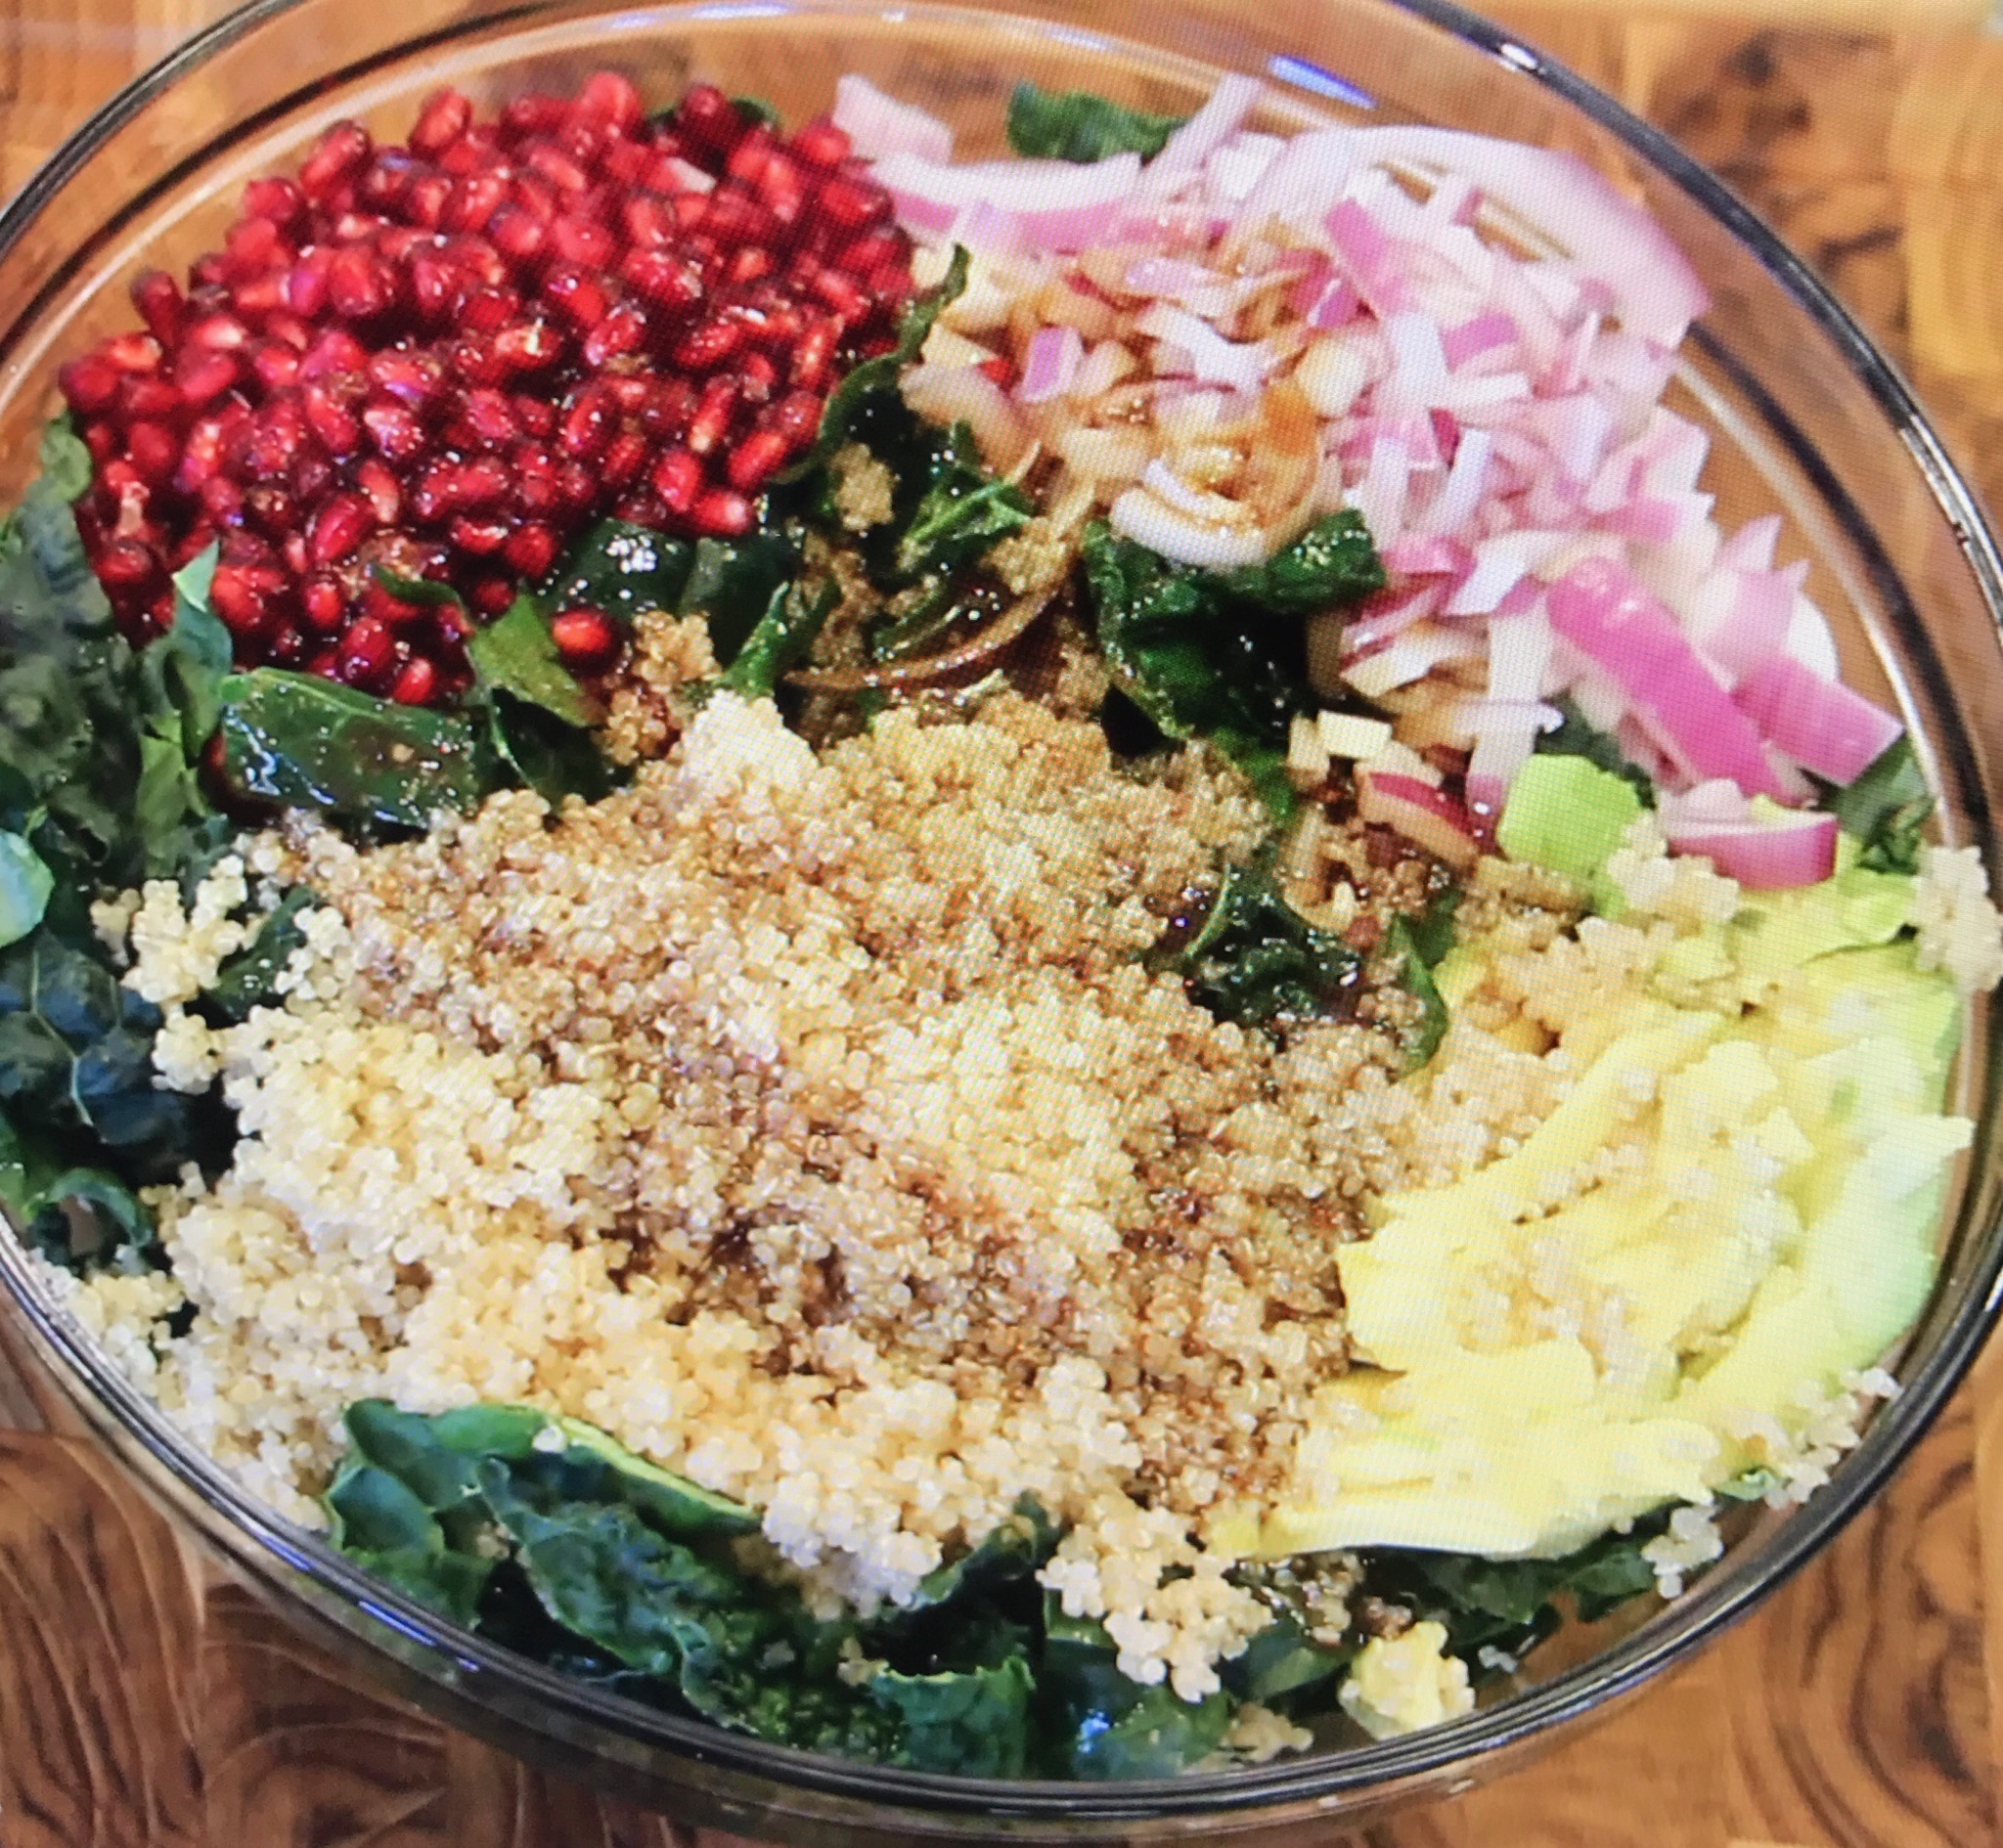 Superfood Kale Offers Something for Everyone